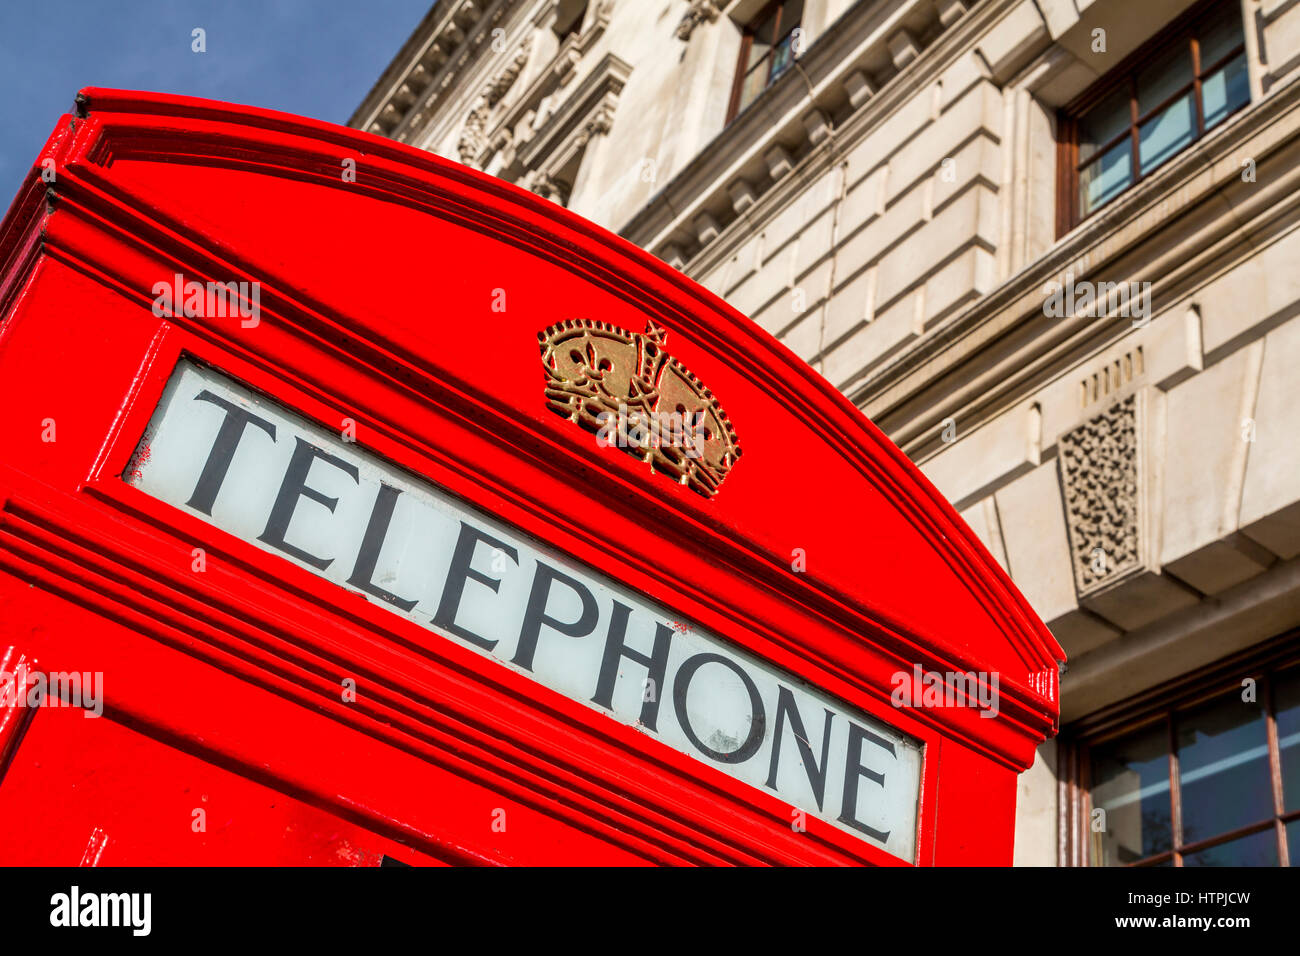 A red telephone box near Westminster, London, England - Stock Image